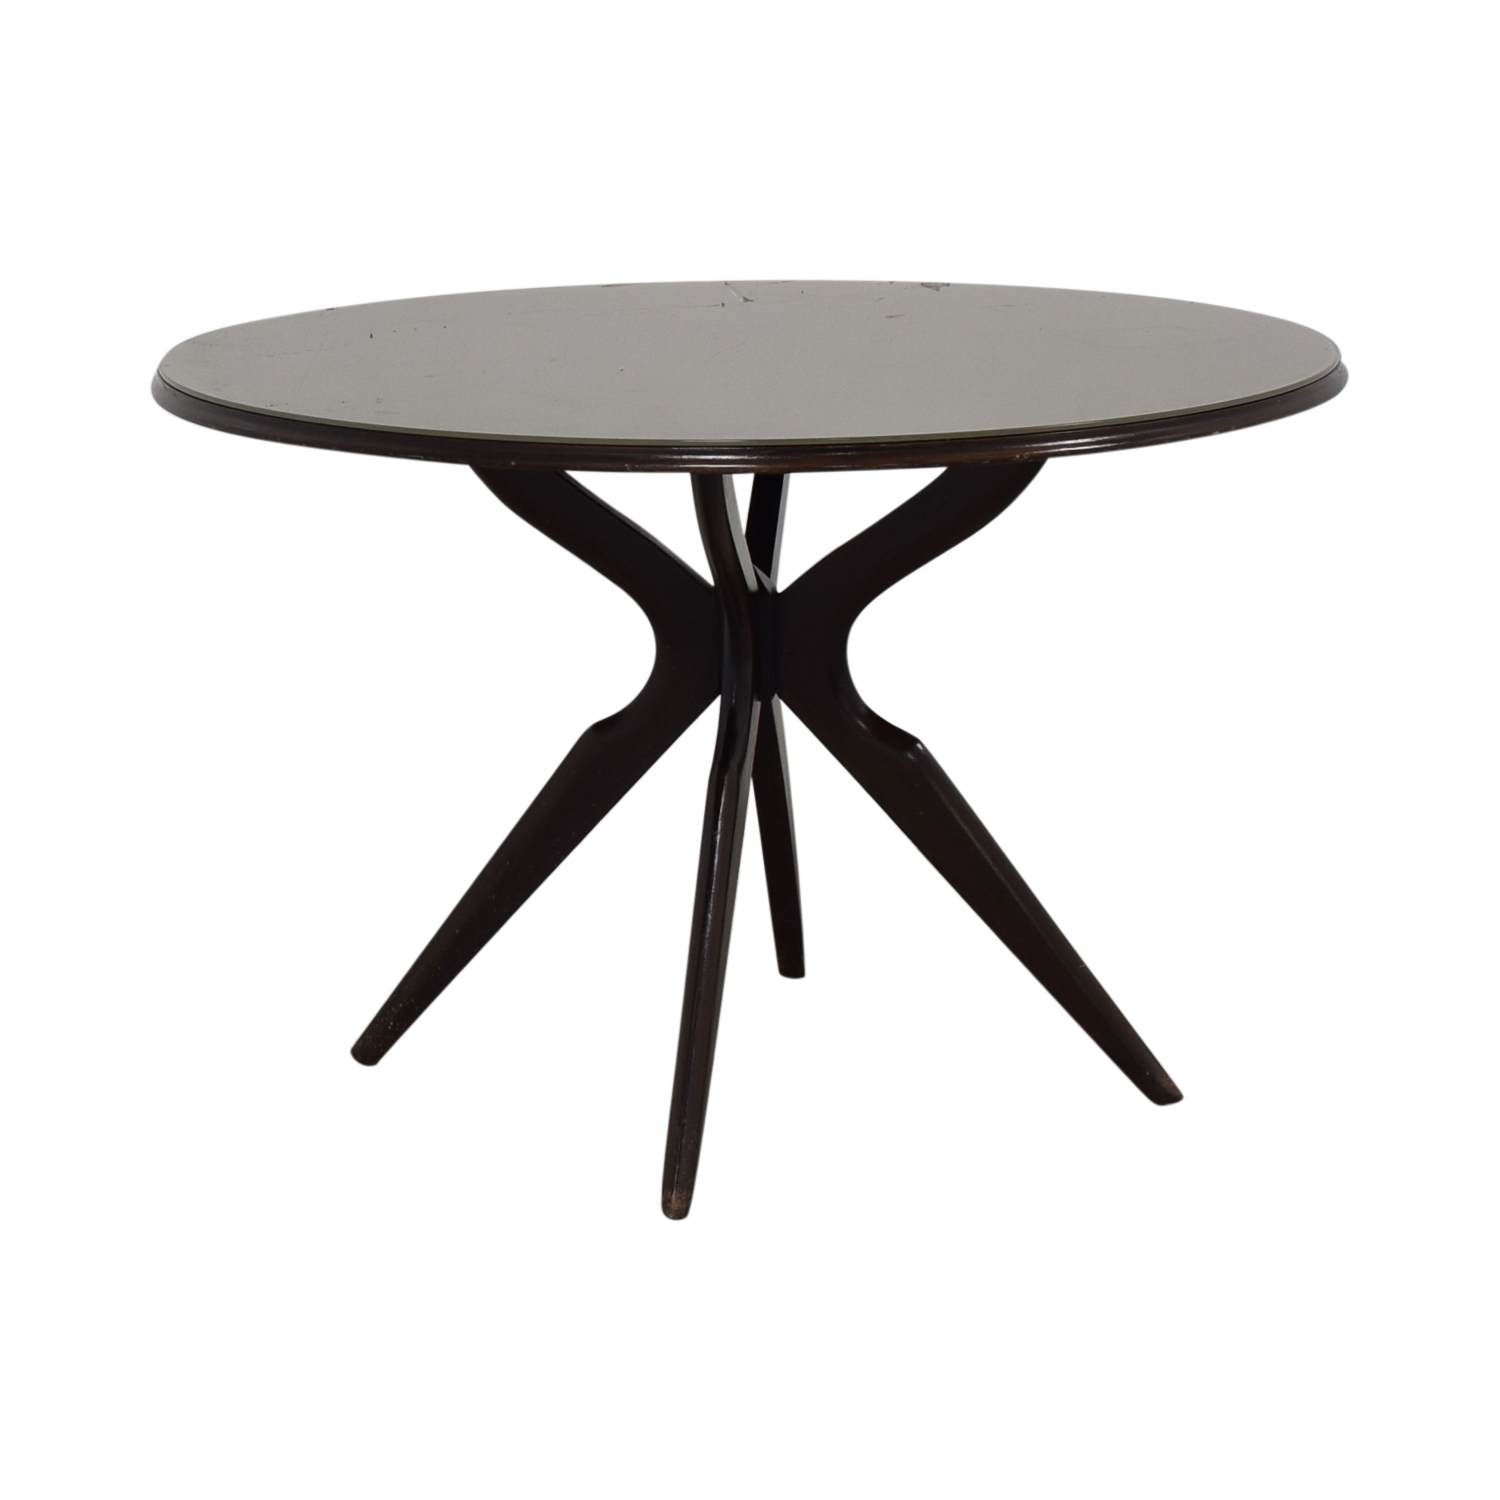 Round Pedestal Table / Dinner Tables